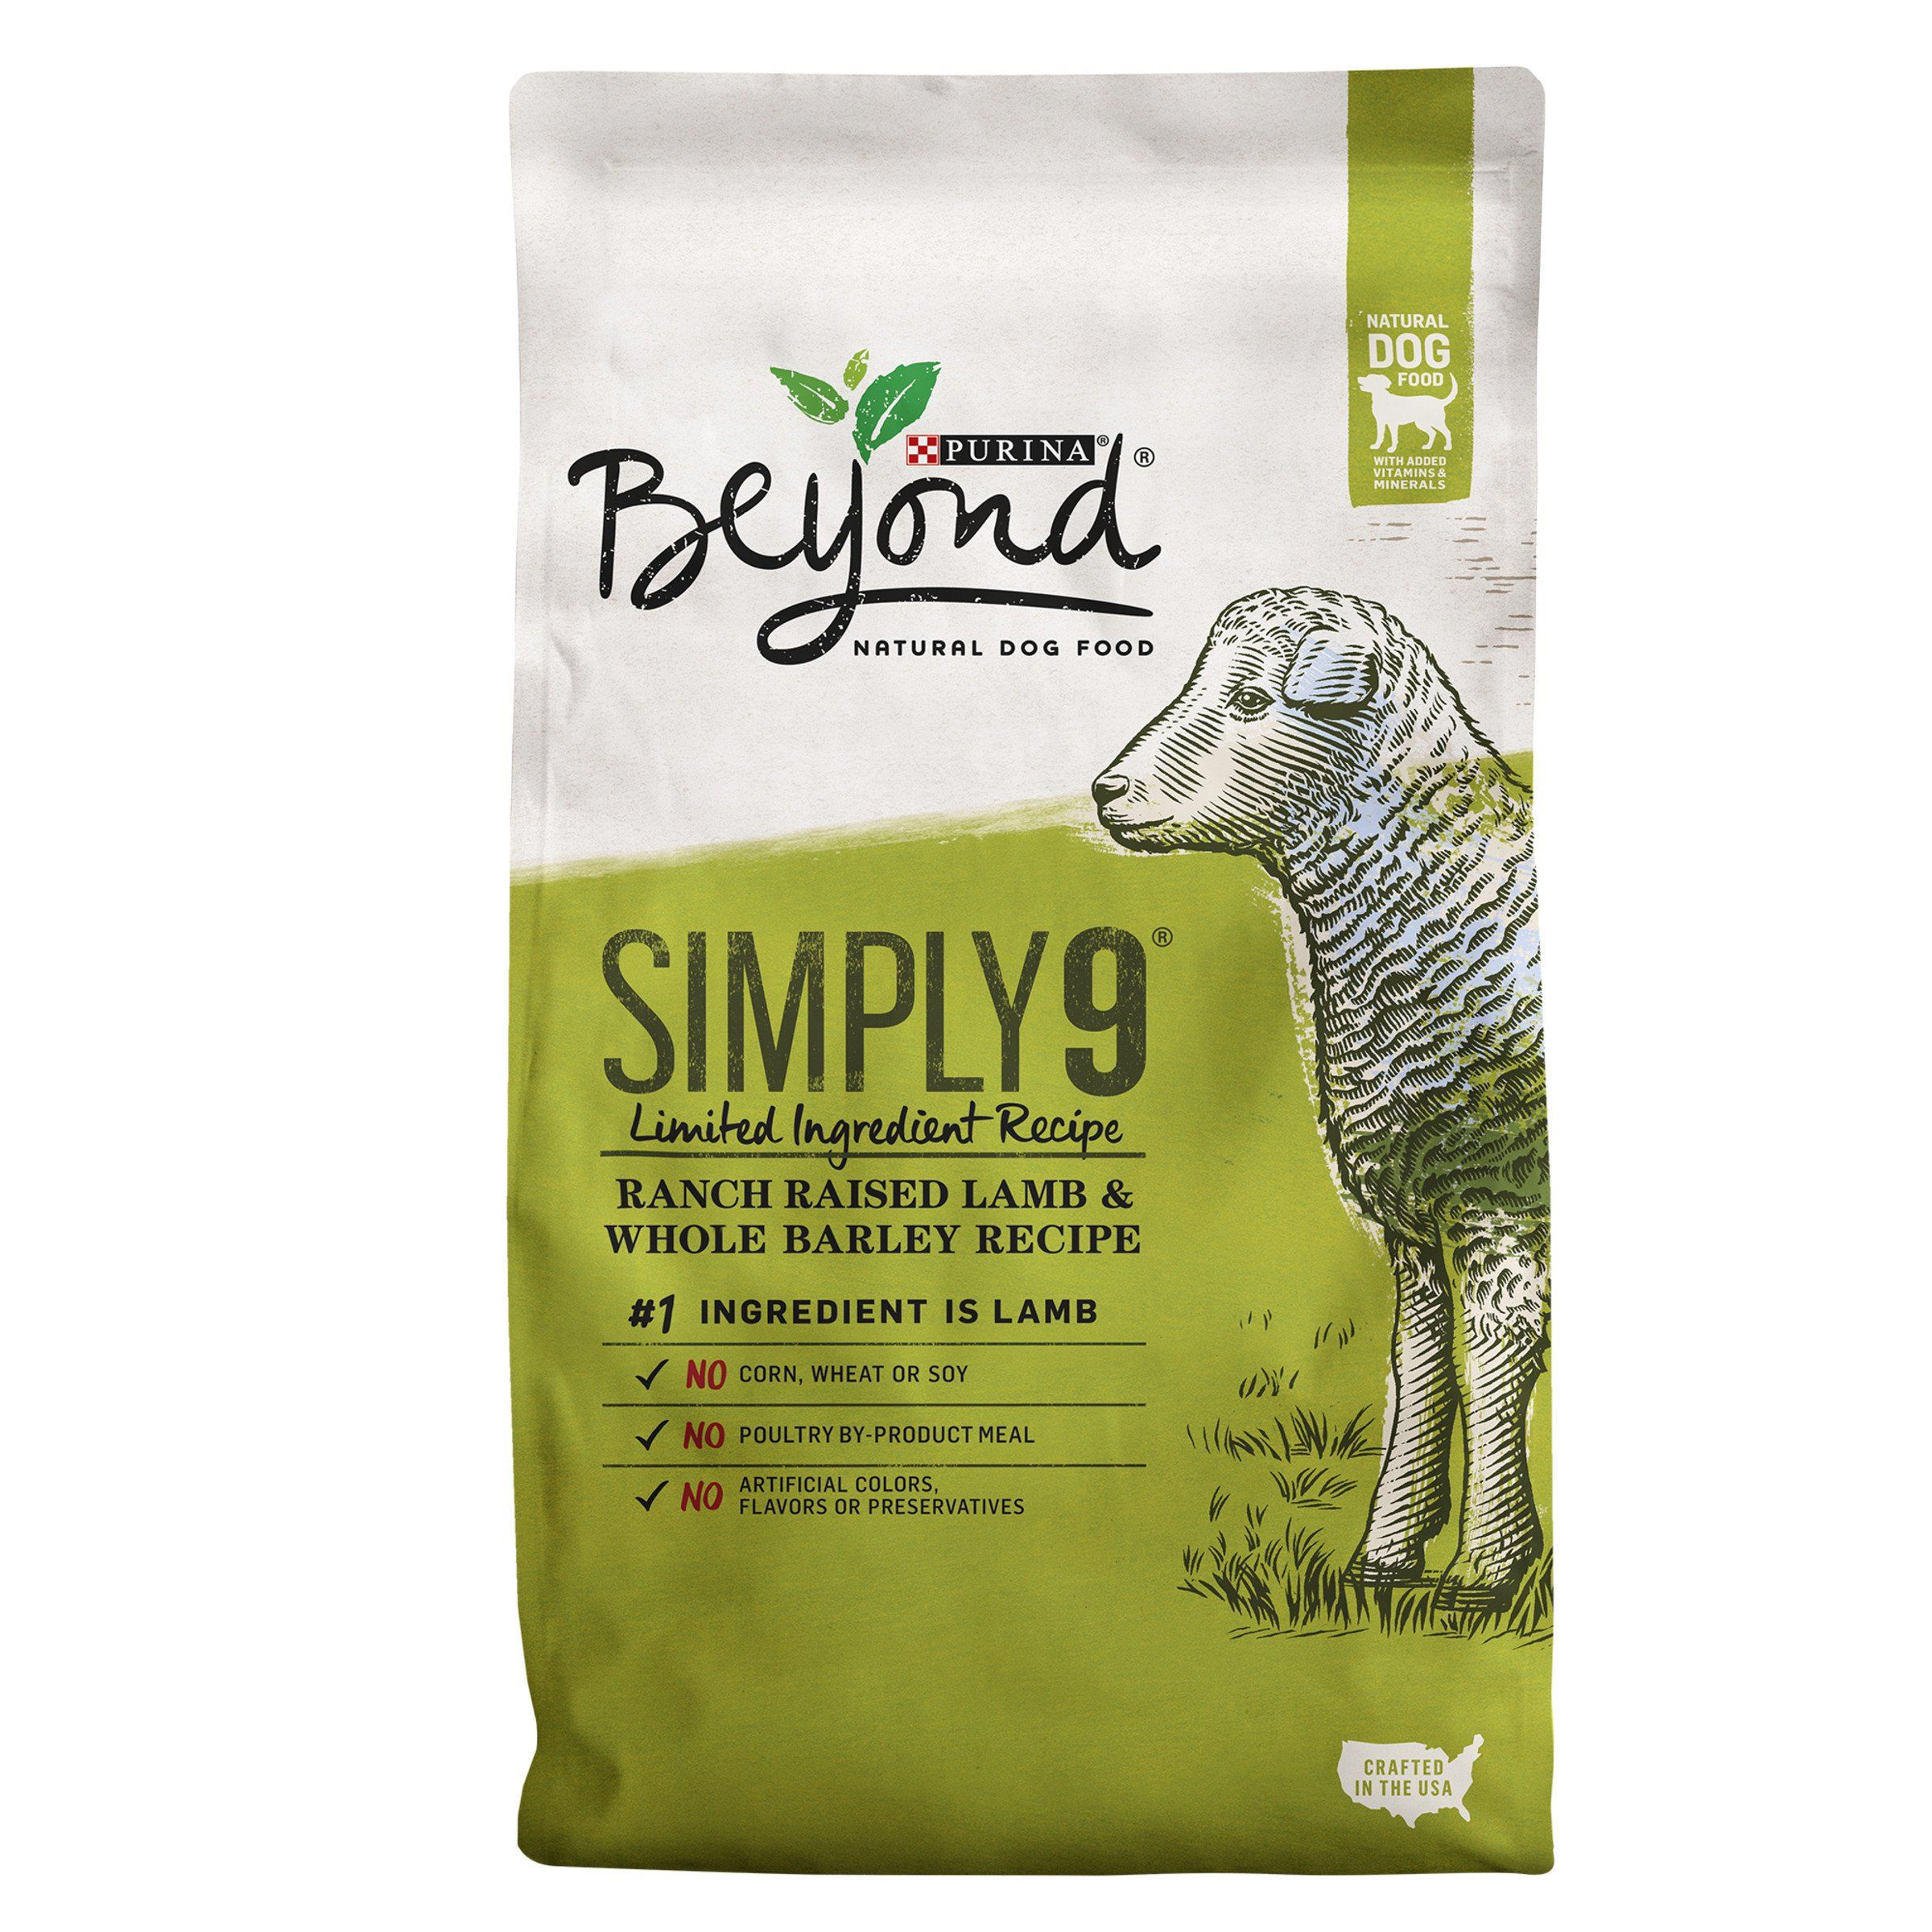 Purina Beyond Simply 9 RanchRaised Lamb and Whole Barley